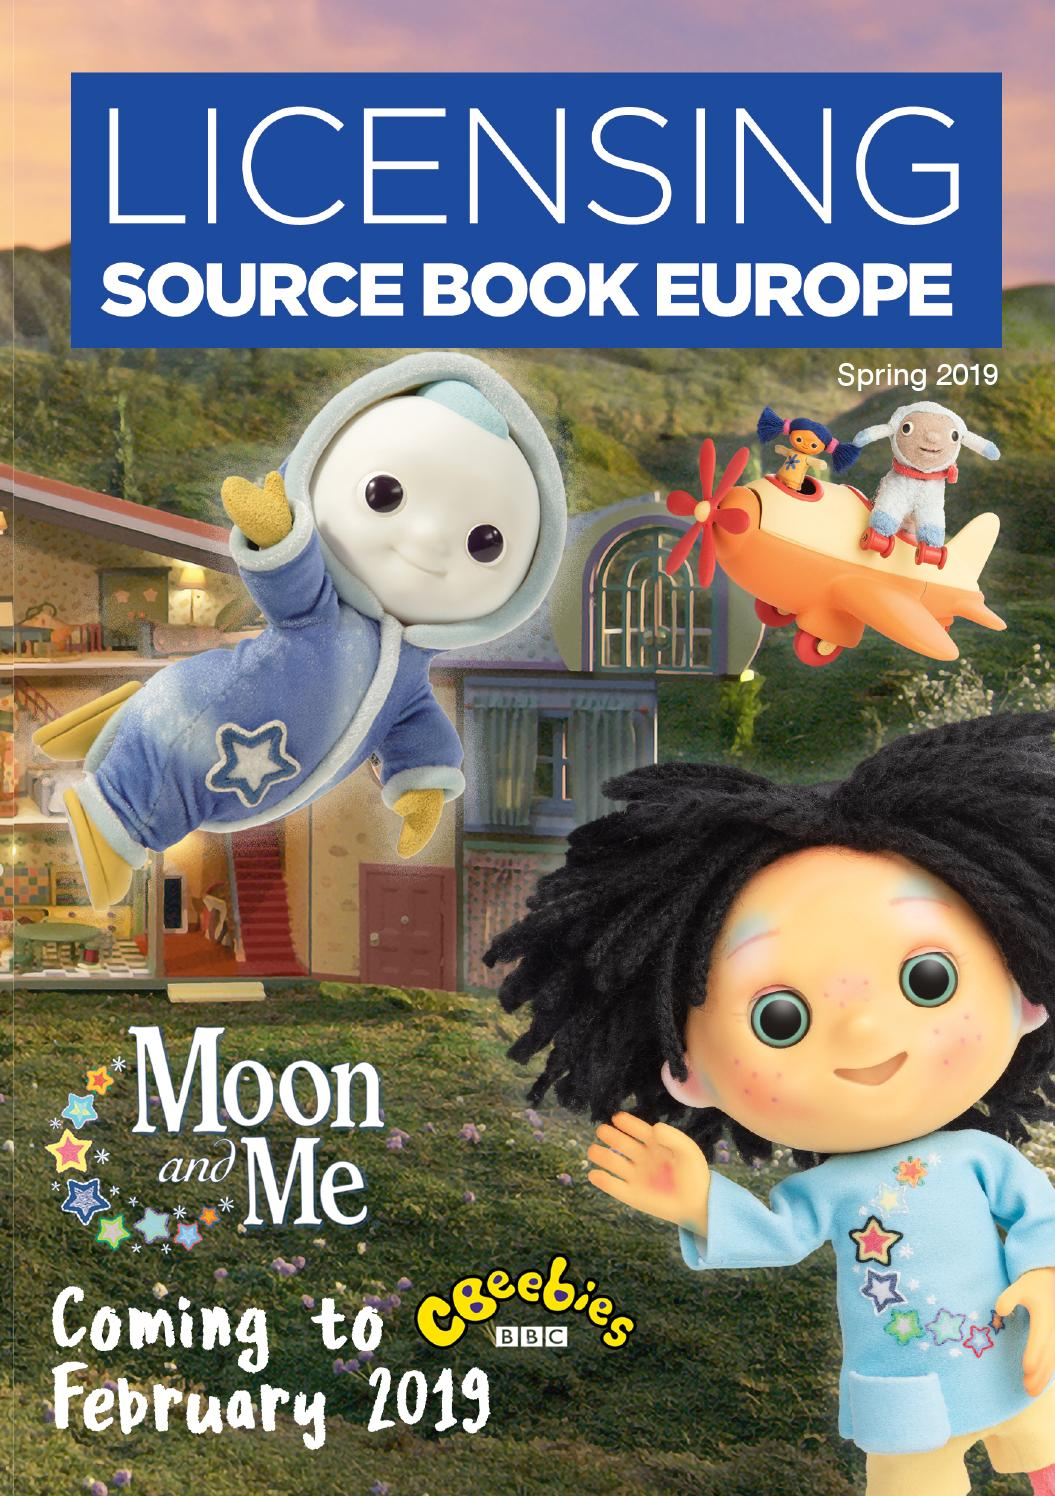 7a105af3a Licensing Source Book Europe - Spring 2019 by Max Publishing - issuu